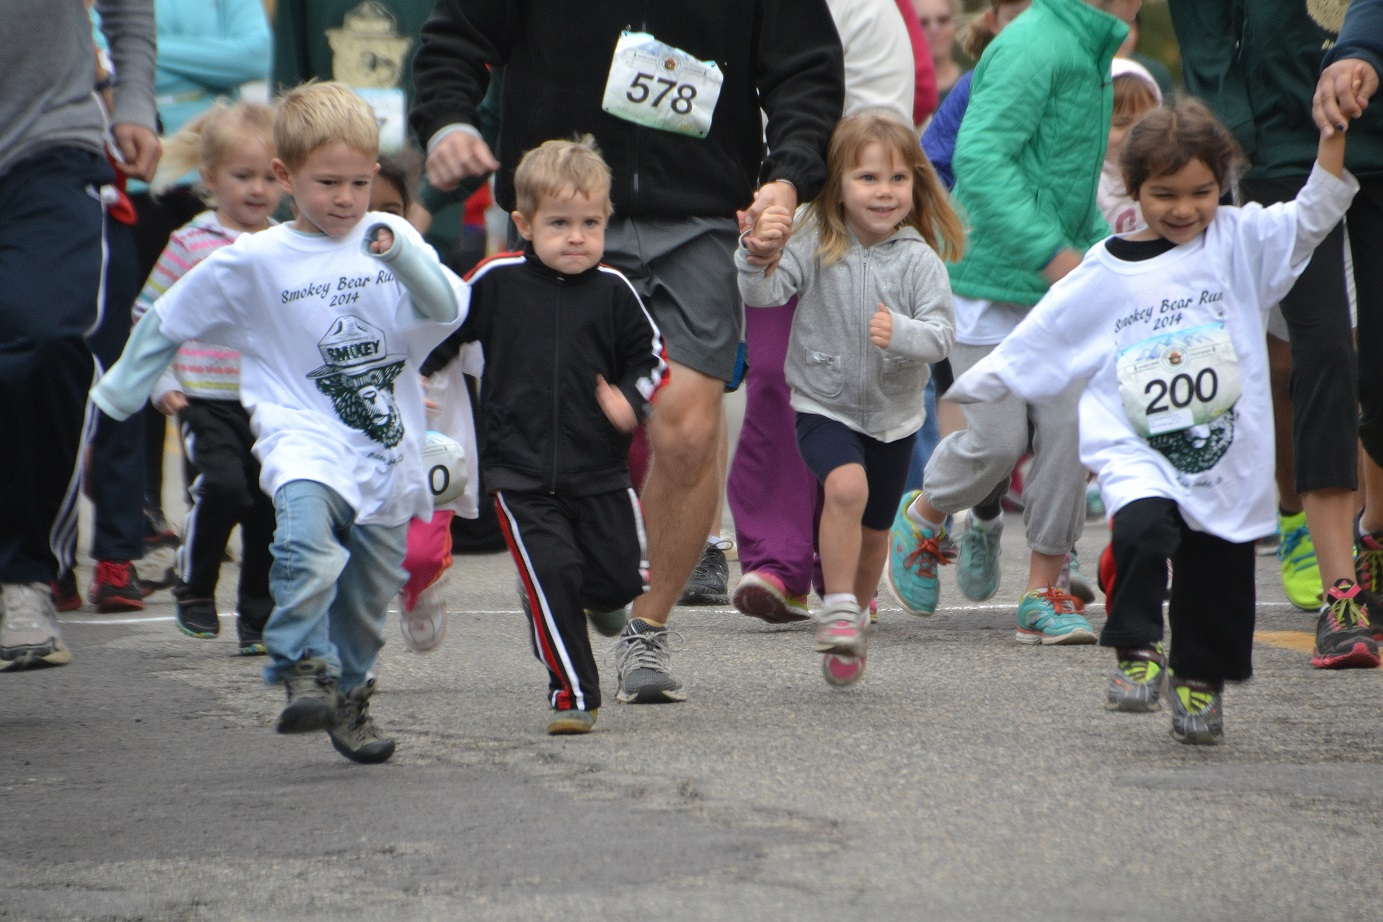 Determination in the 2-4 year old race - photo by Gina Clugston